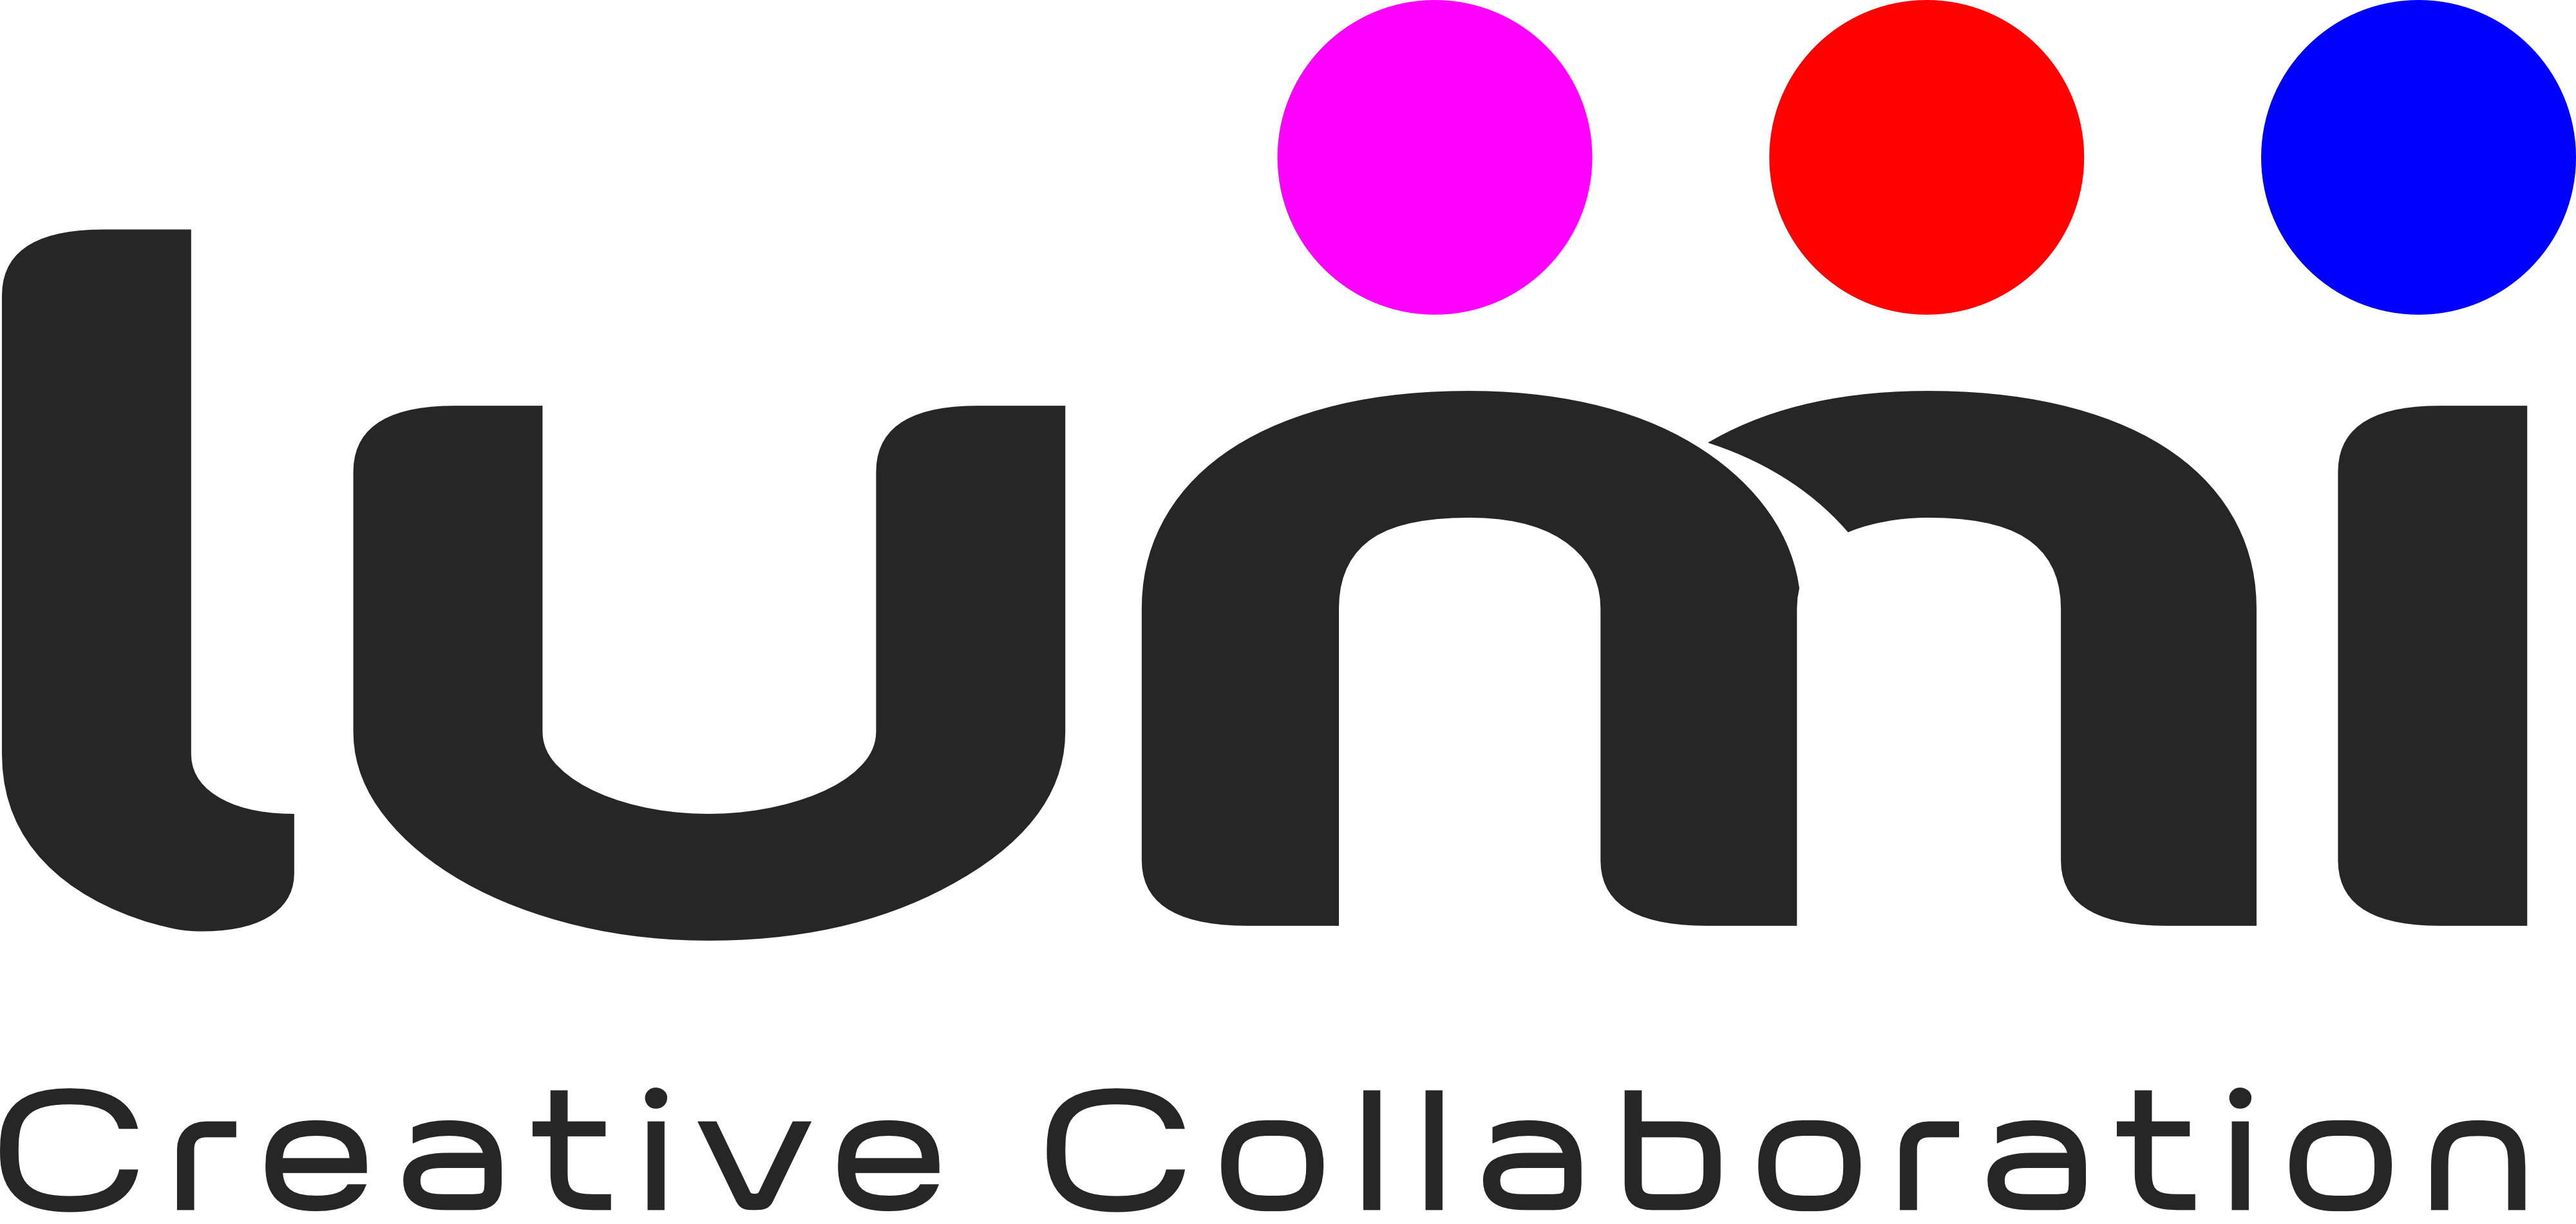 Lumi - Revolutionise the way TV content is made.